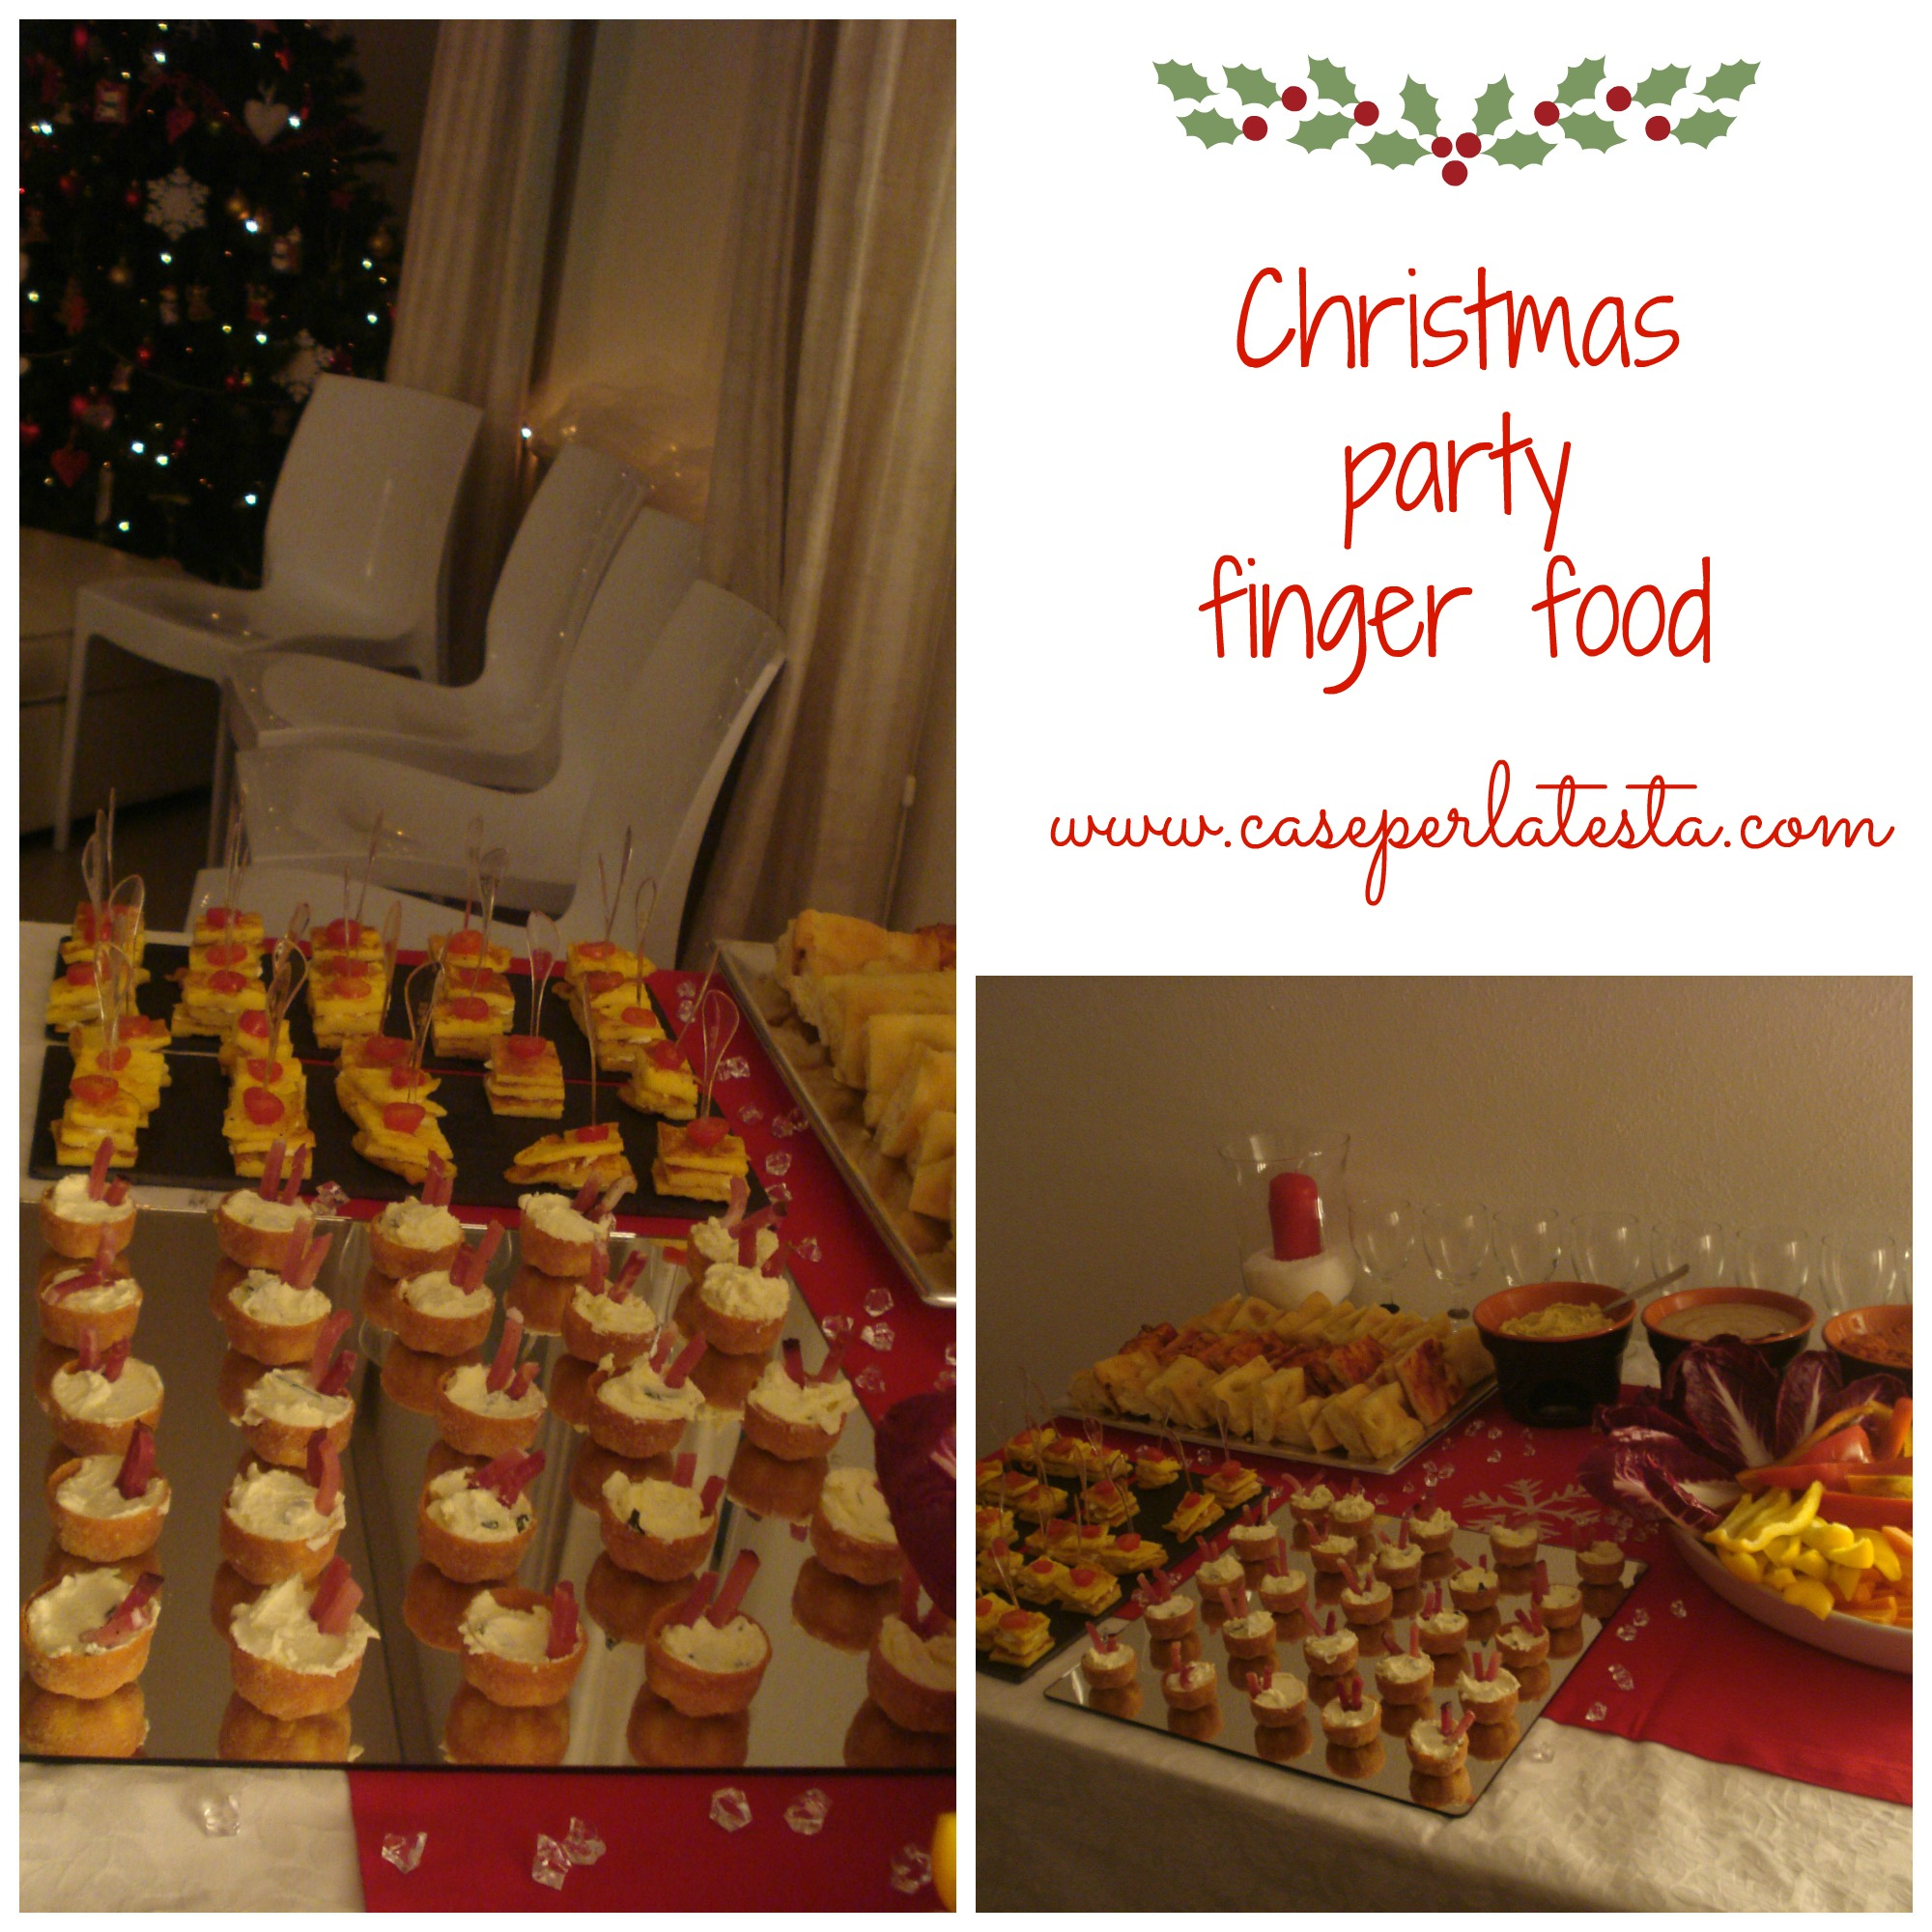 xmas party finger food low cost caseperlatesta. Black Bedroom Furniture Sets. Home Design Ideas